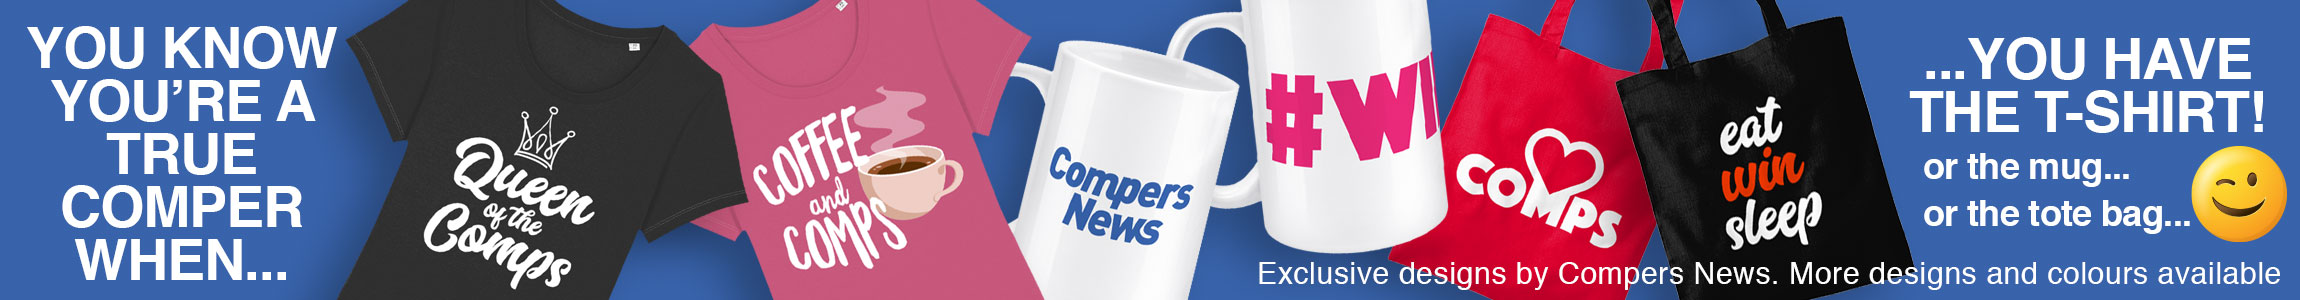 Compers News Shop